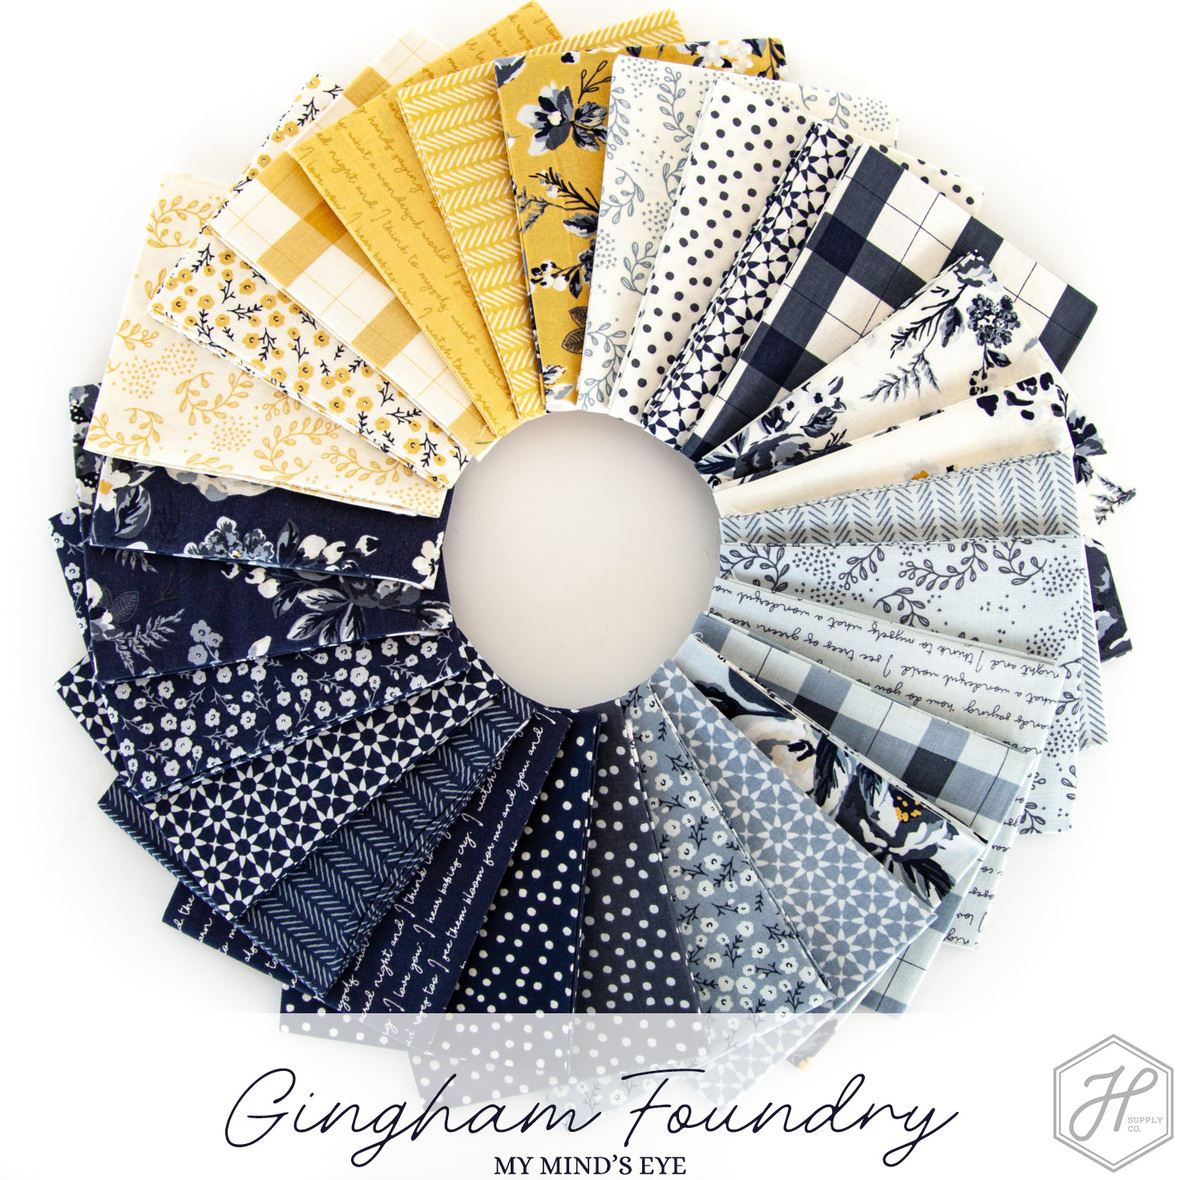 Gingham Foundry Riley Blake Fabric at Hawthorne Supply Co